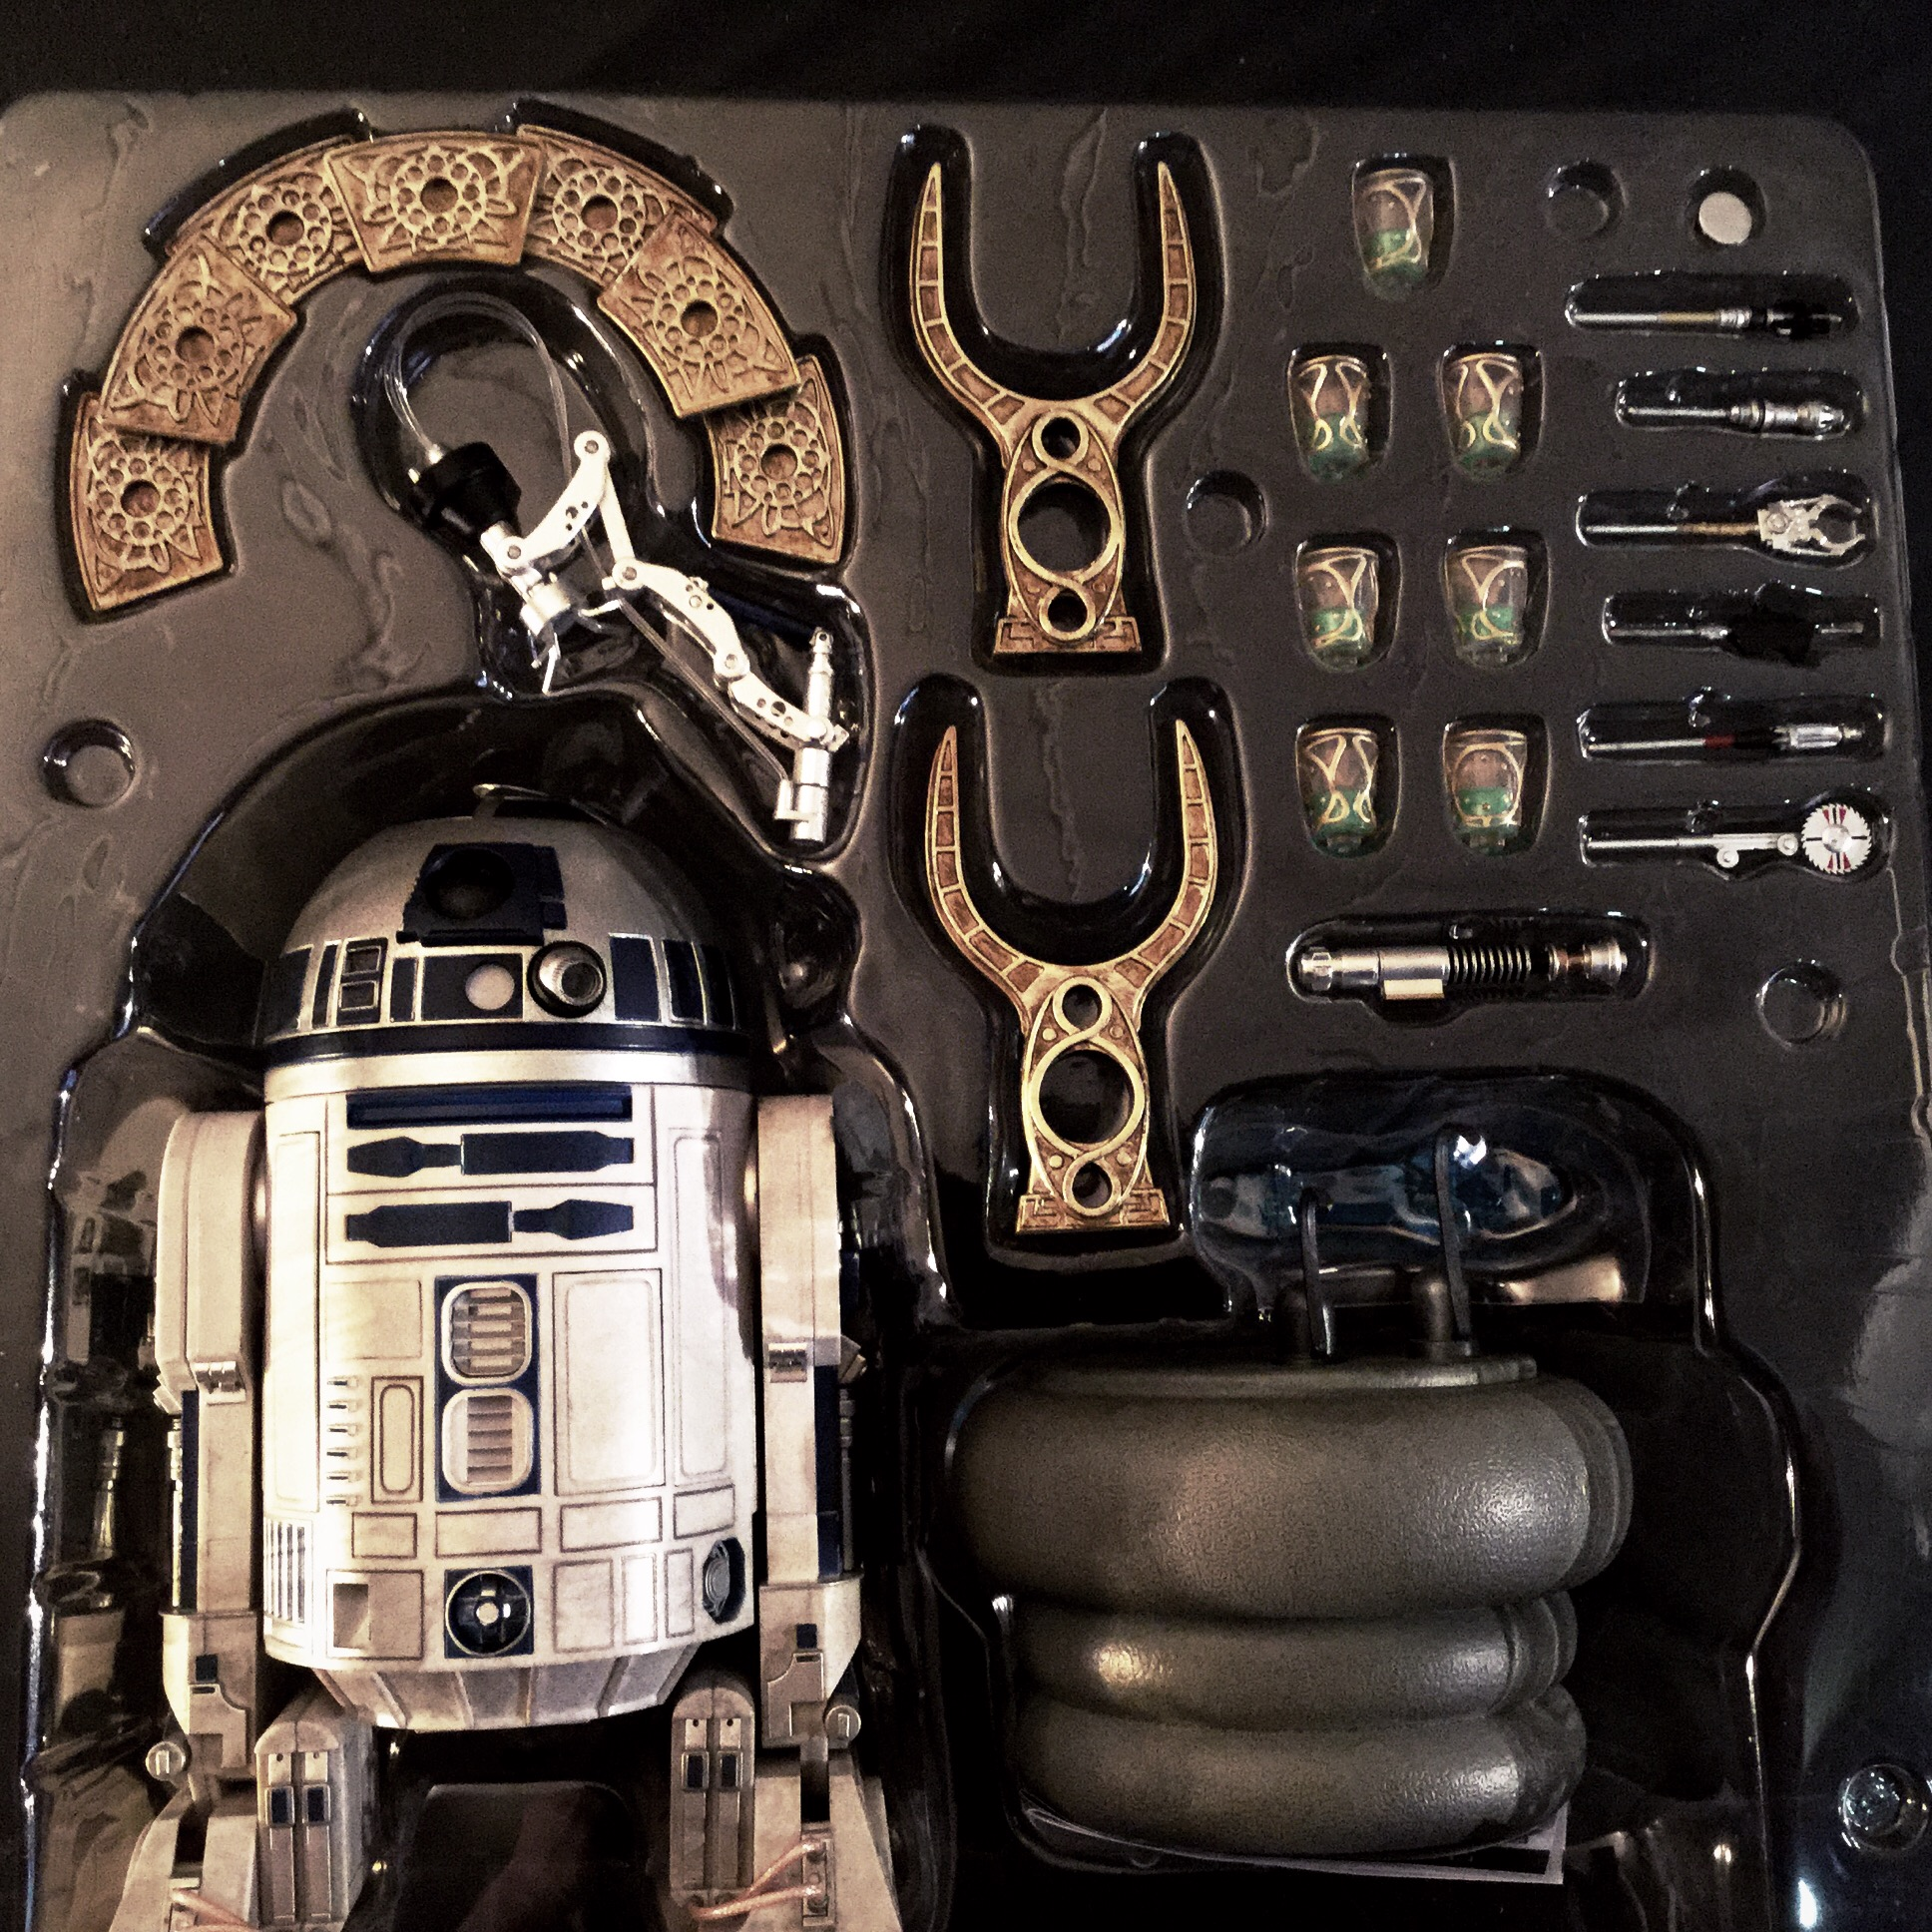 [REVIEW] Star Wars : R2-D2 Deluxe (Sideshow) 16256620970_35a0548278_o